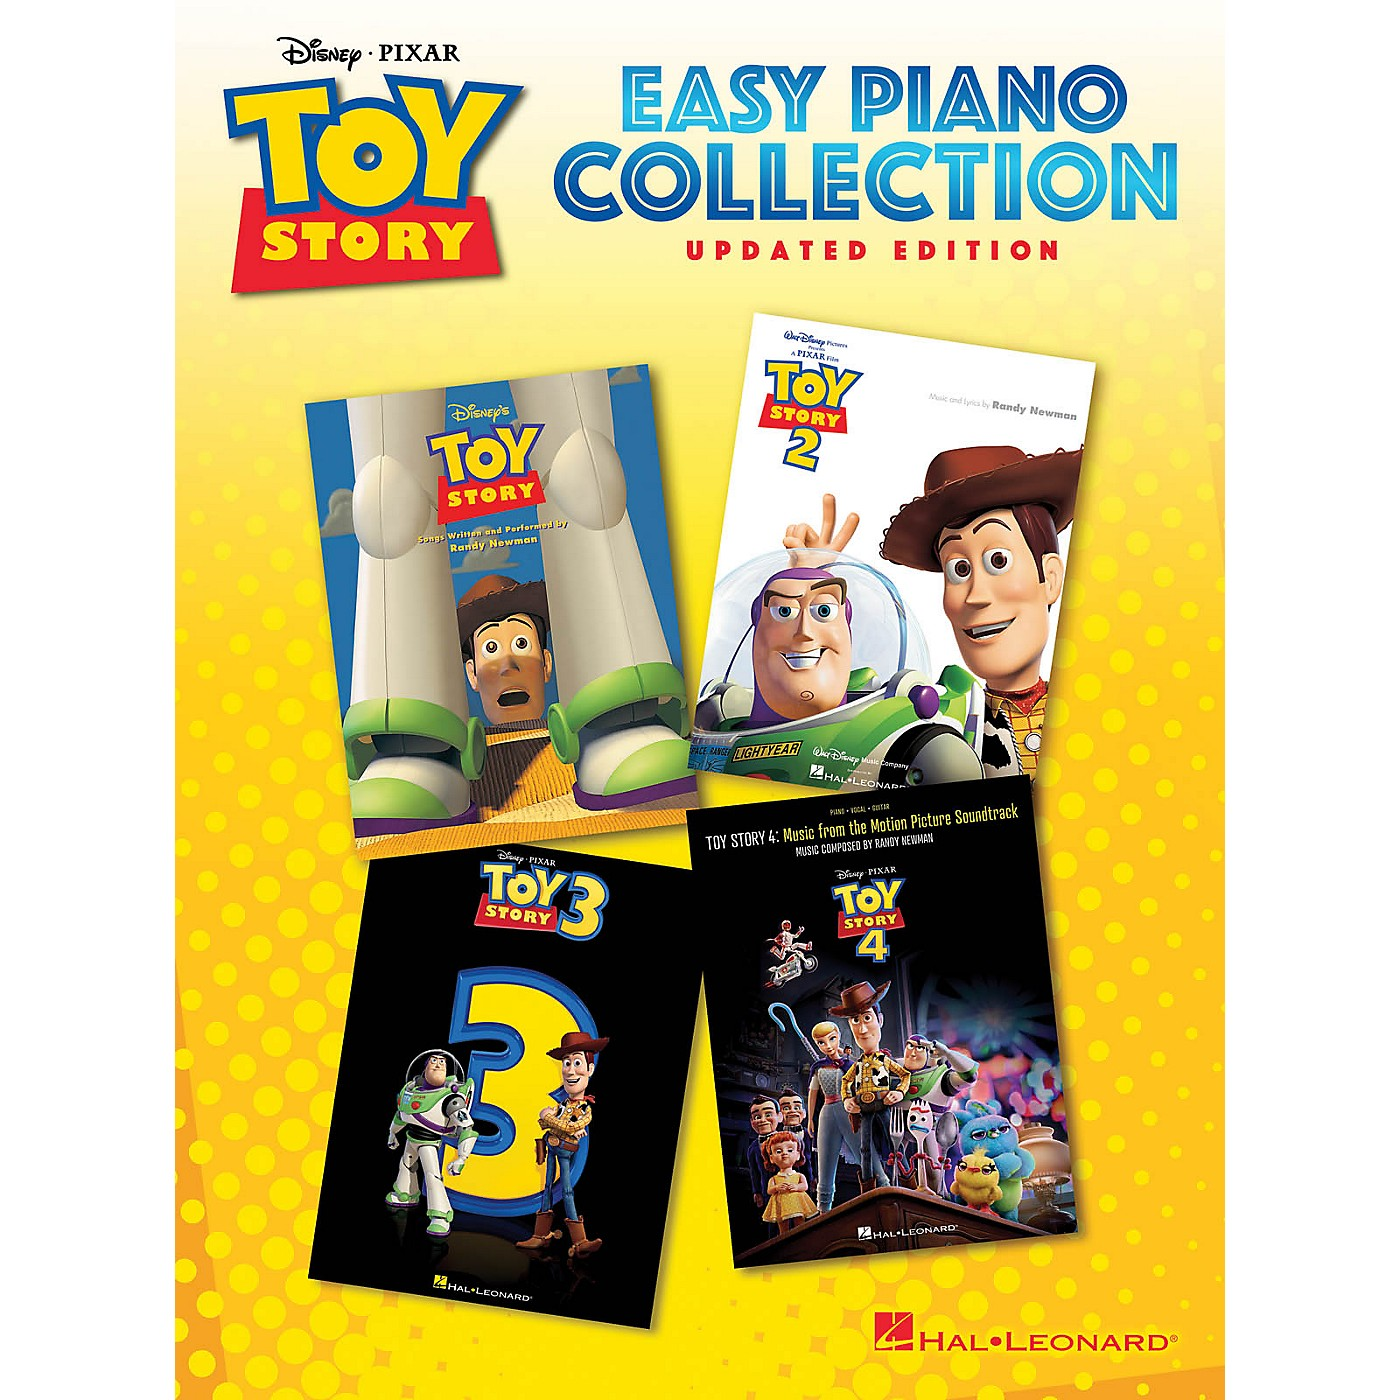 Hal Leonard Toy Story Easy Piano Collection - Updated Edition thumbnail